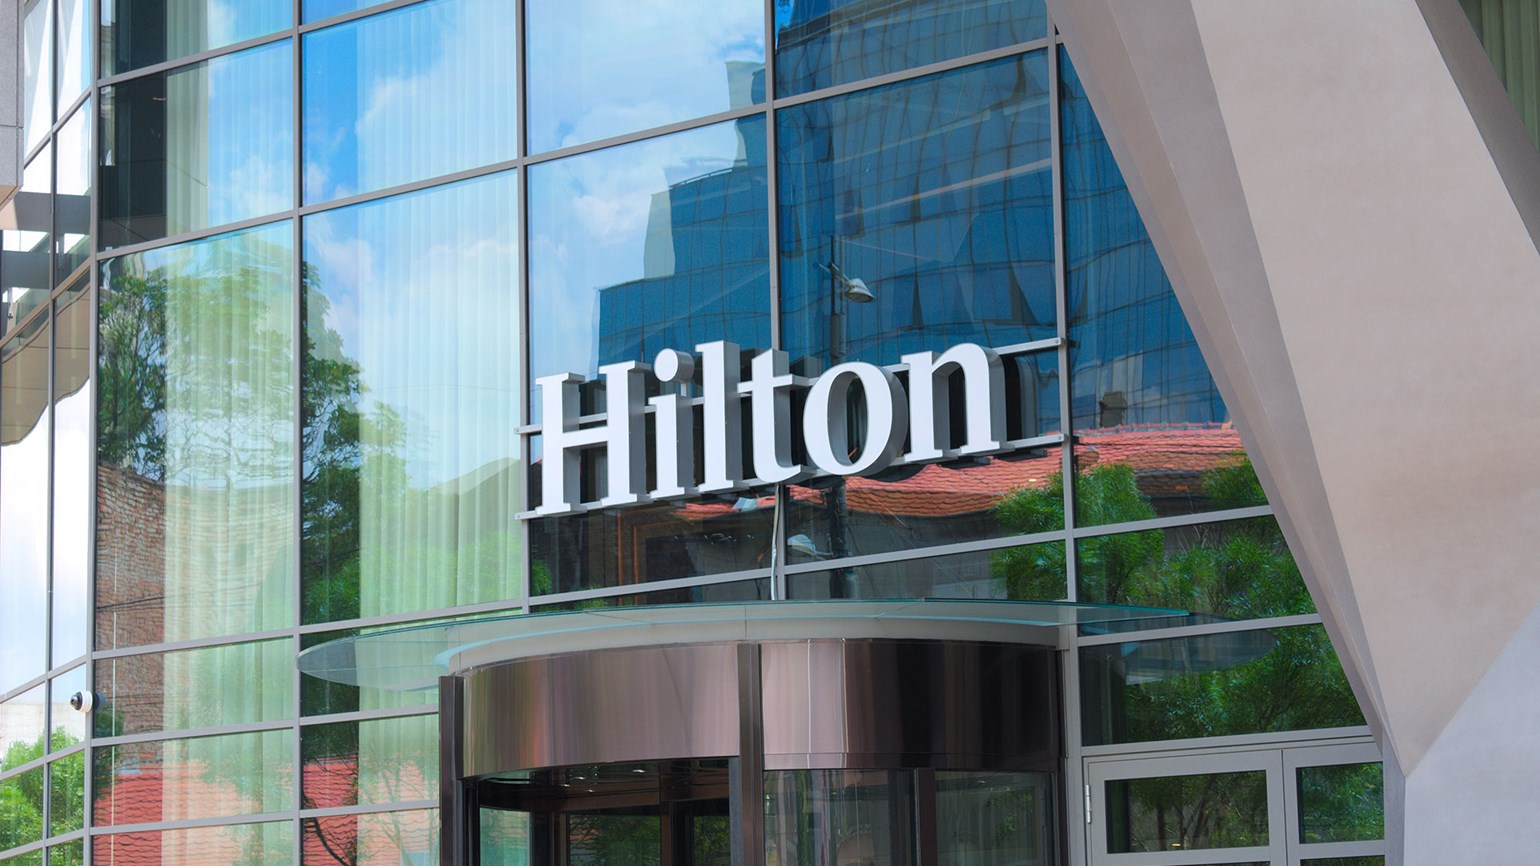 Recovery to former levels is two to three years away, Hilton CEO says